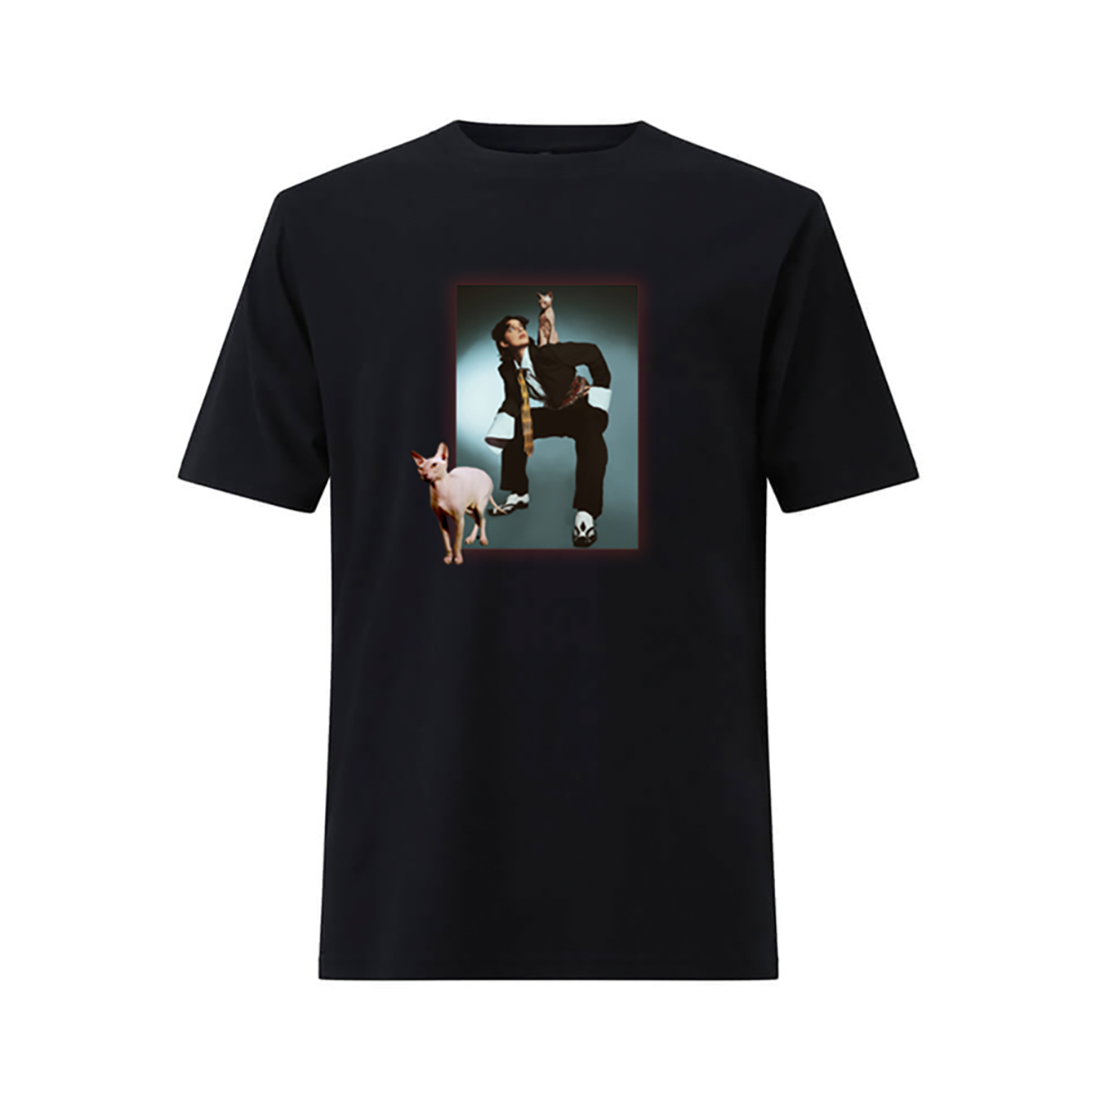 Gia Ford: 'Murder In The Dark' T-Shirt